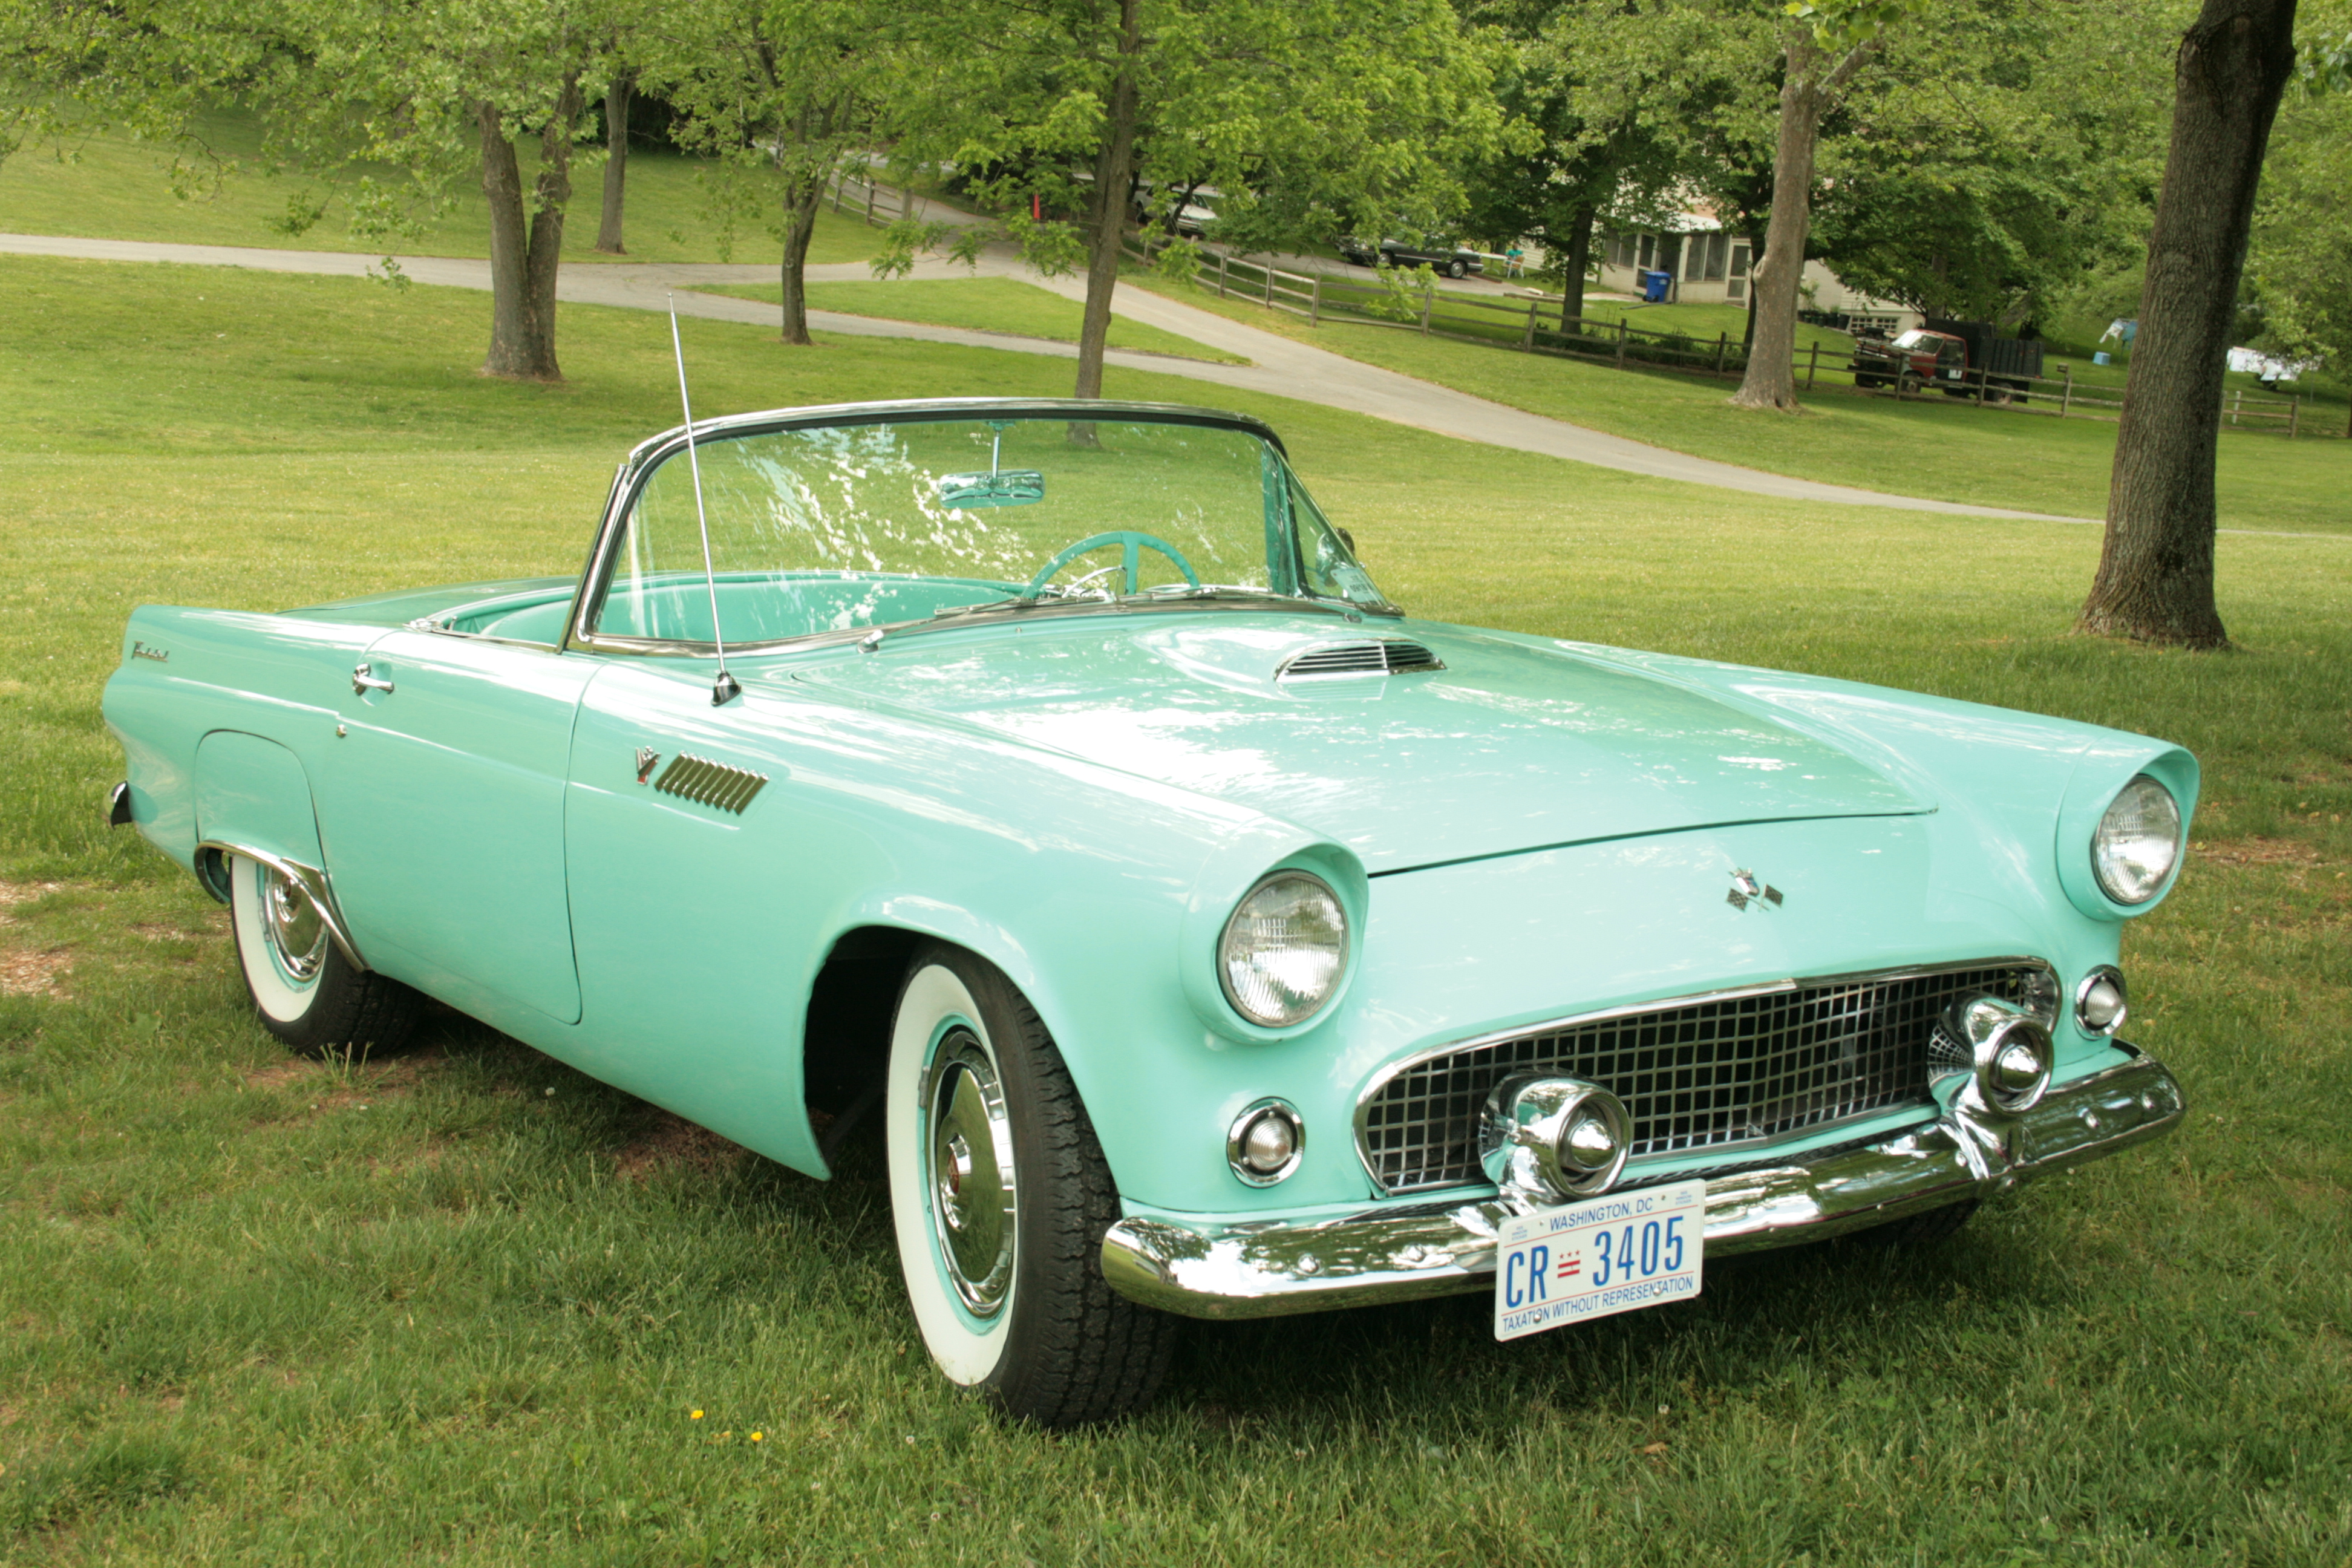 Ford Thunderbird –